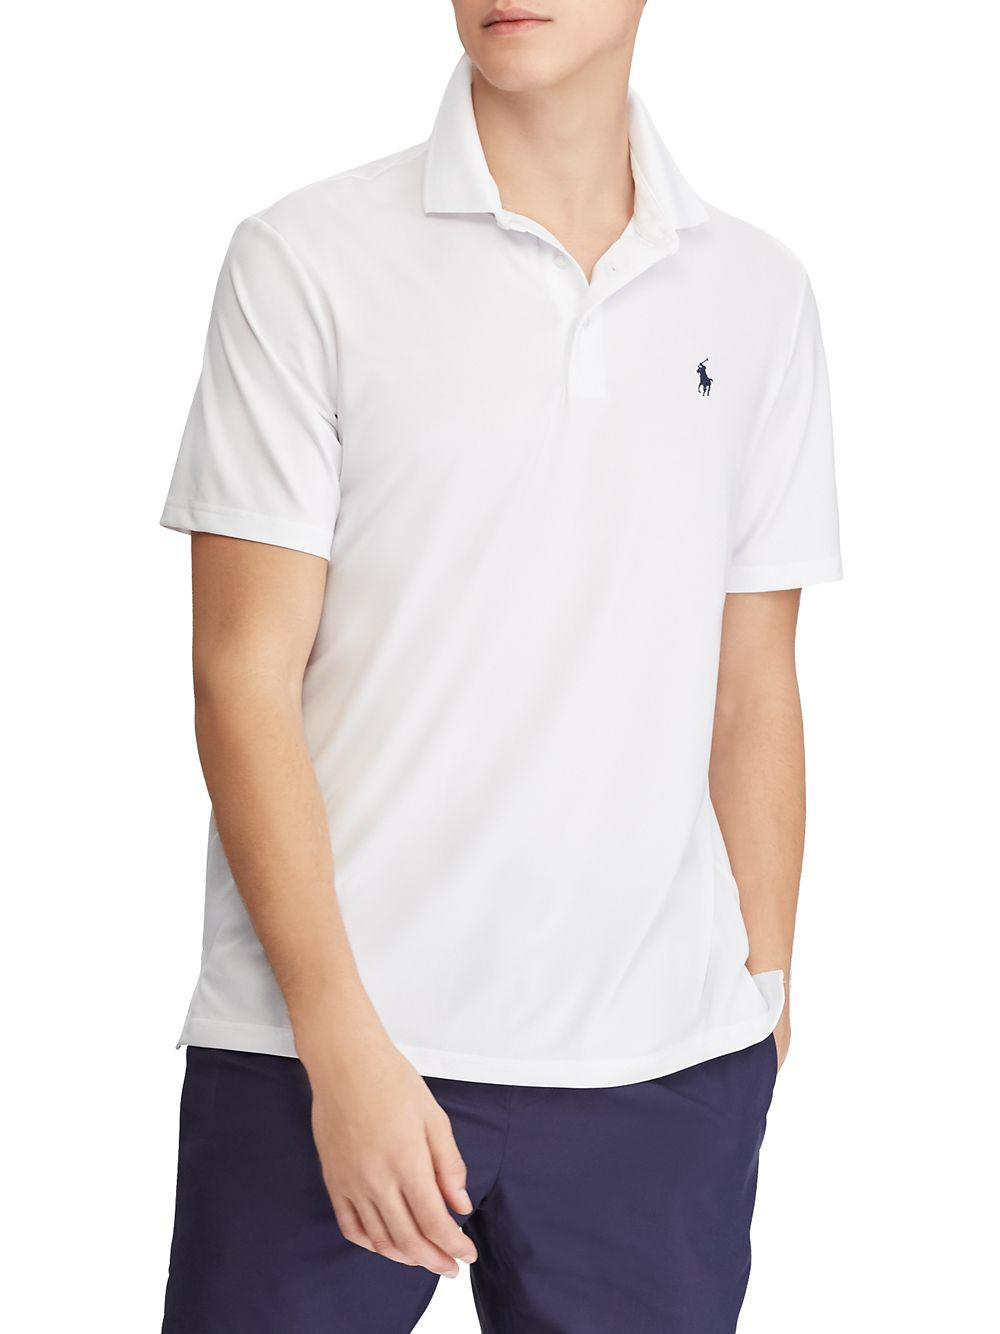 92186c1a15b Polo Ralph Lauren Active-fit Performance Polo in White for Men - Lyst